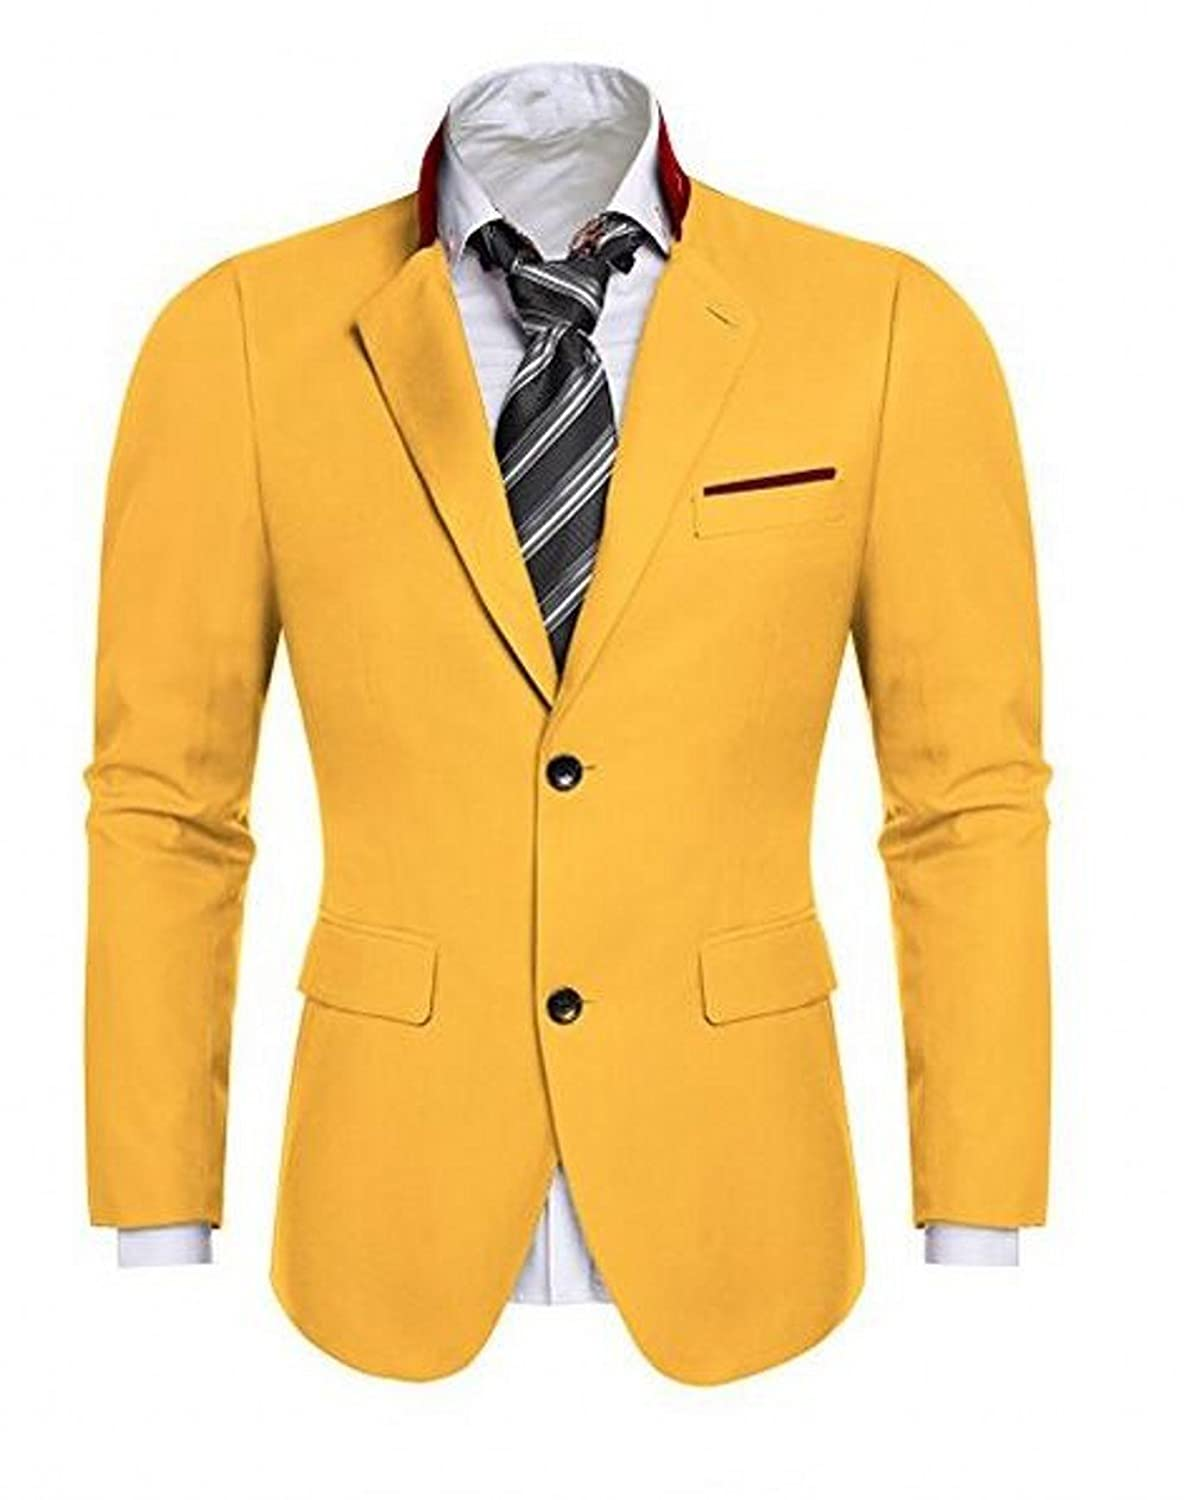 Honey GD Mens Winter Warm Stand Collar Short Long Sleeve Coat Jacket